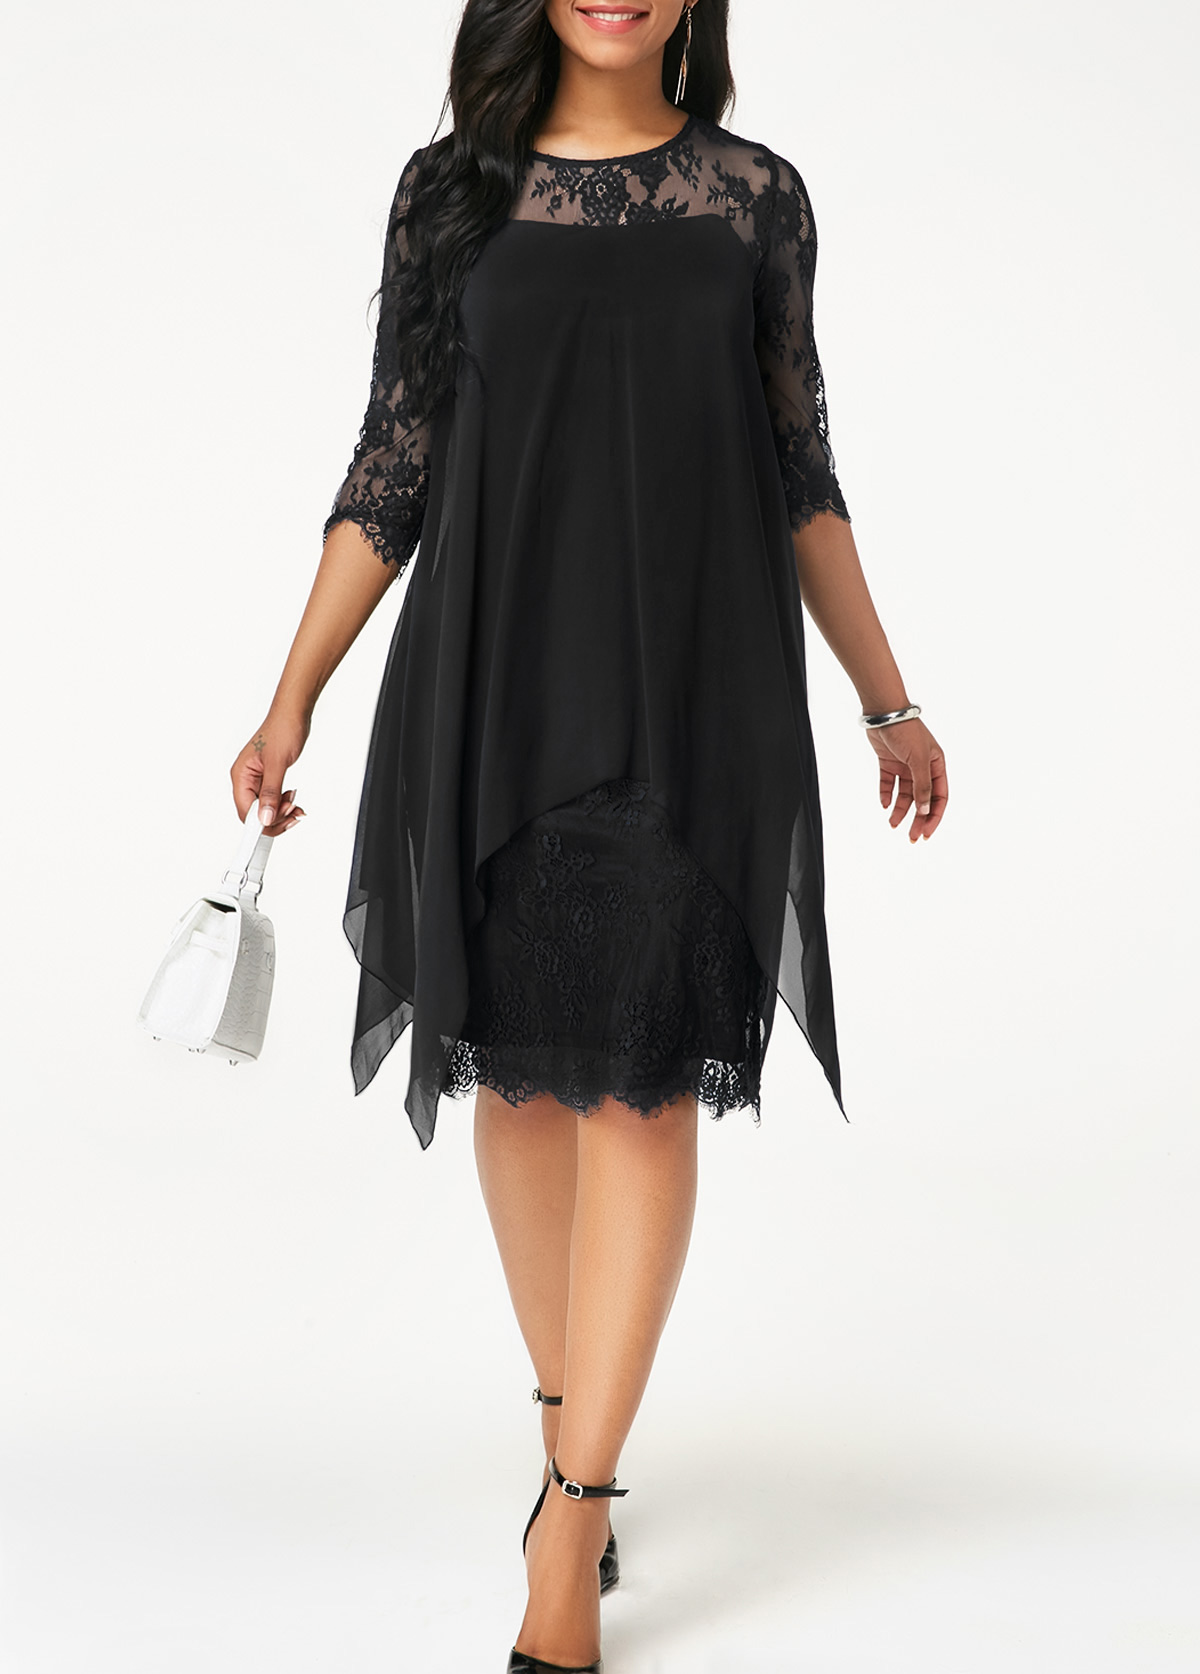 Chiffon Overlay Black Three Quarter Sleeve Lace Dress